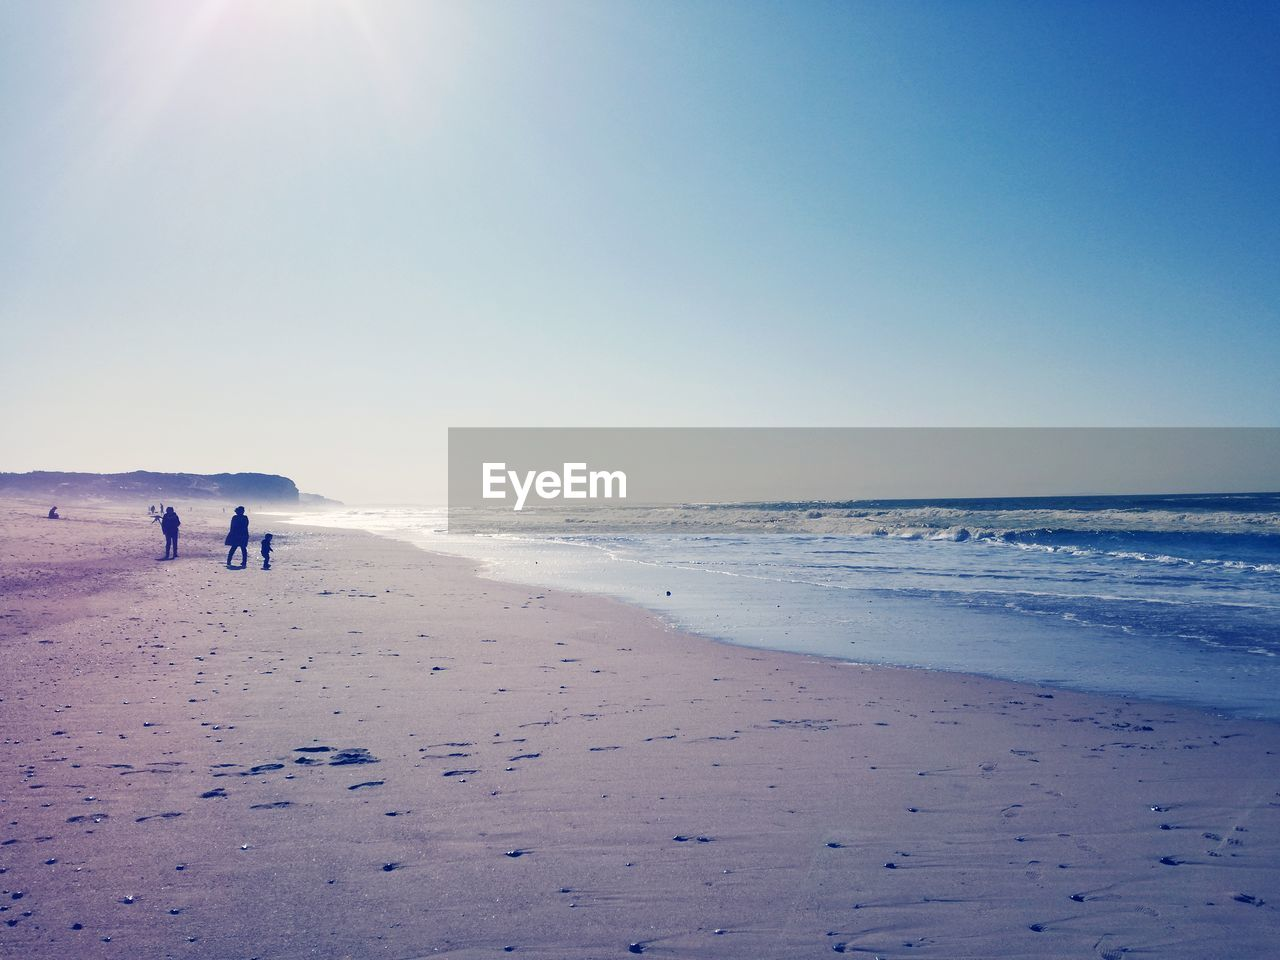 land, sea, beach, sky, water, beauty in nature, horizon, sand, horizon over water, scenics - nature, nature, tranquility, clear sky, tranquil scene, real people, holiday, sunlight, trip, day, outdoors